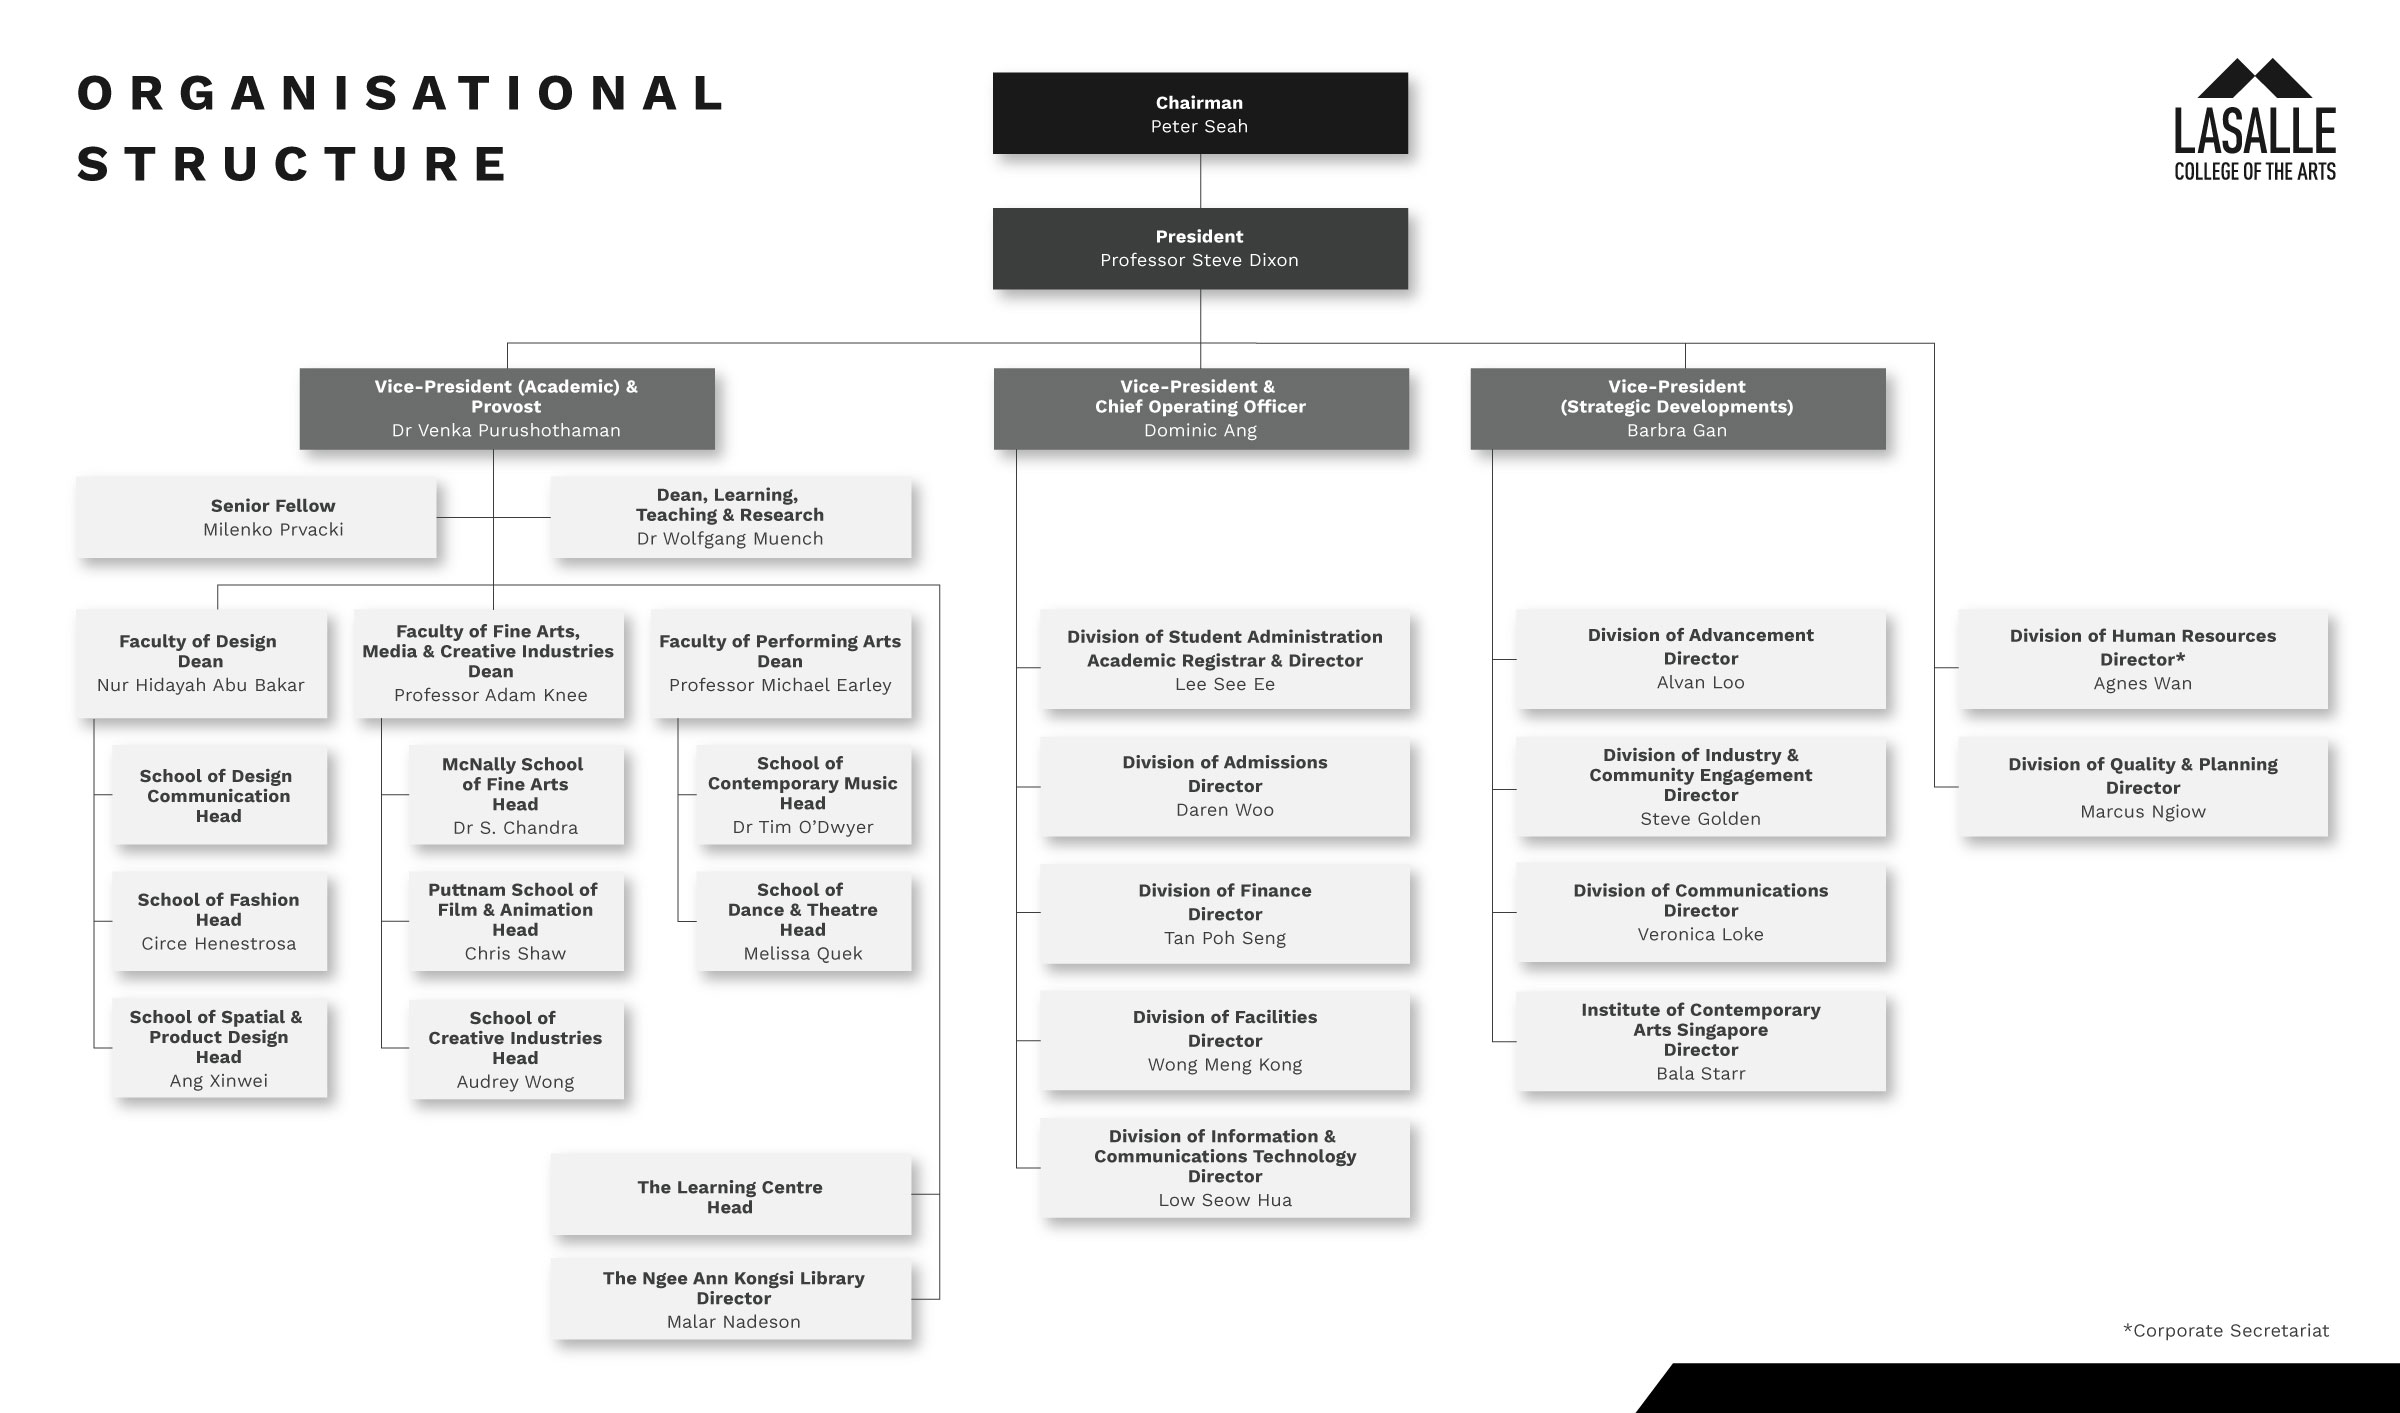 note a including 12 89 % ownership interest held by |Singapore Airlines Organizational Chart